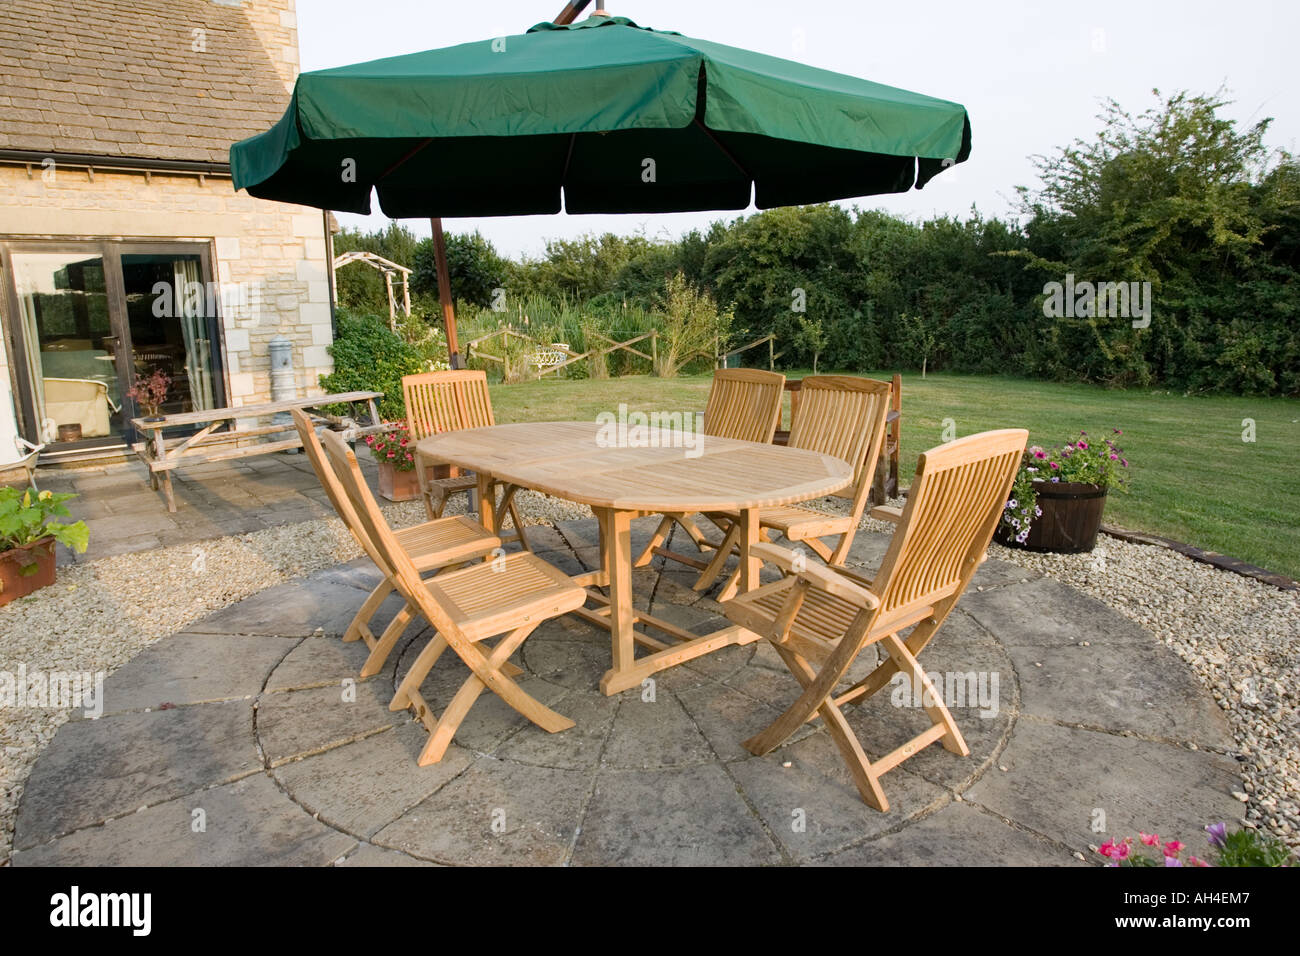 Teak Garden Table And Chairs On Patio With Large Umbrella Above Cotswolds UK